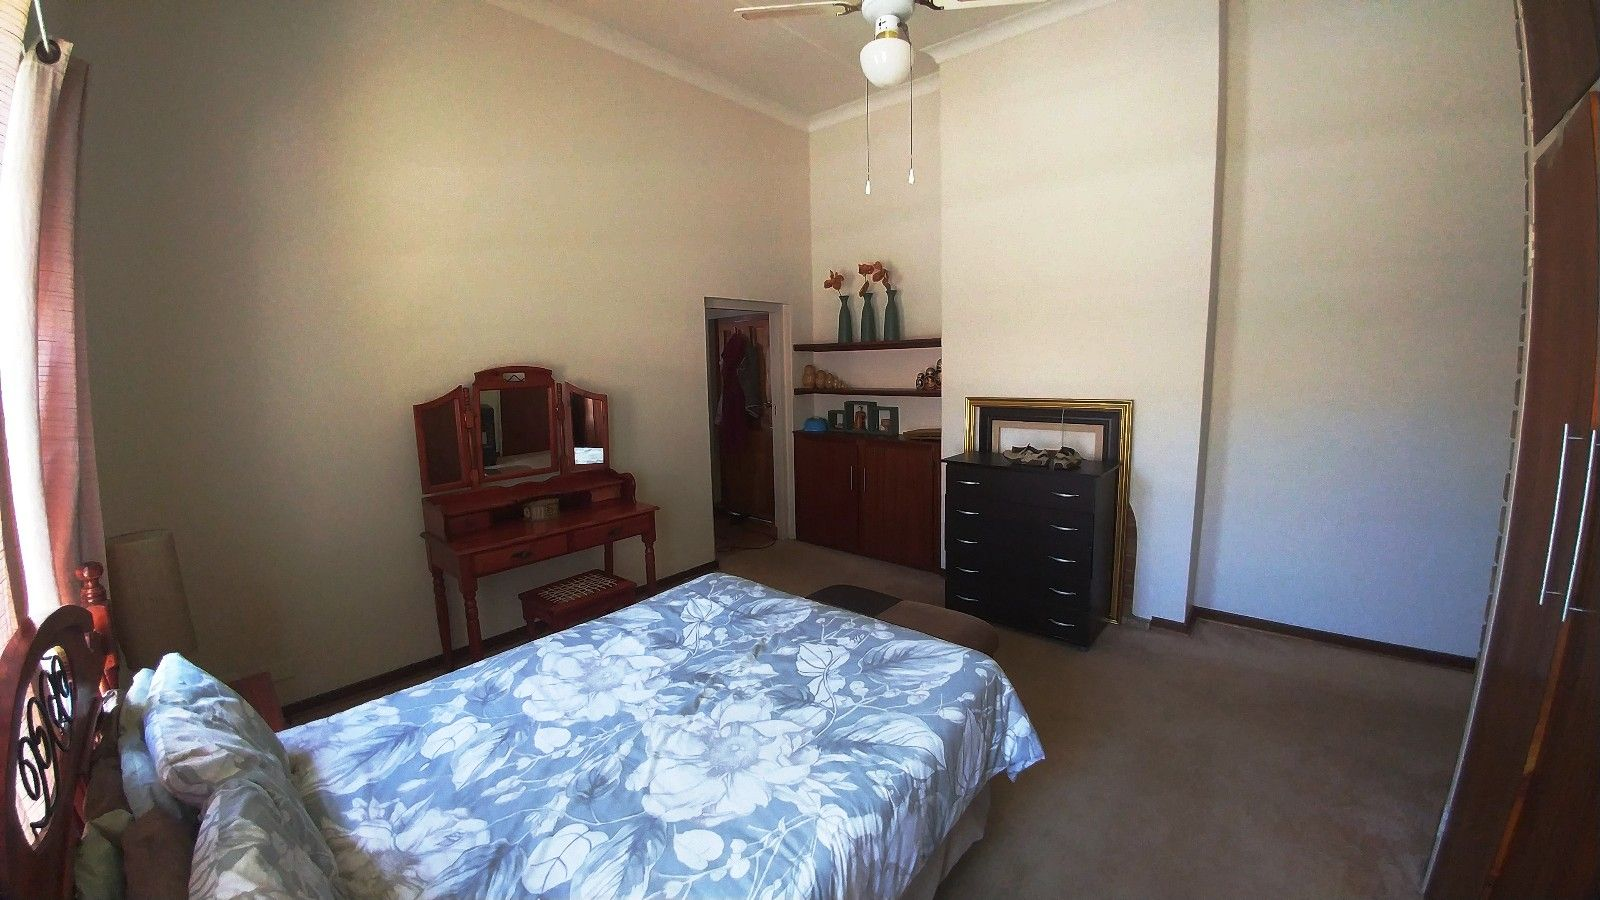 Potchefstroom Central property for sale. Ref No: 13460775. Picture no 11